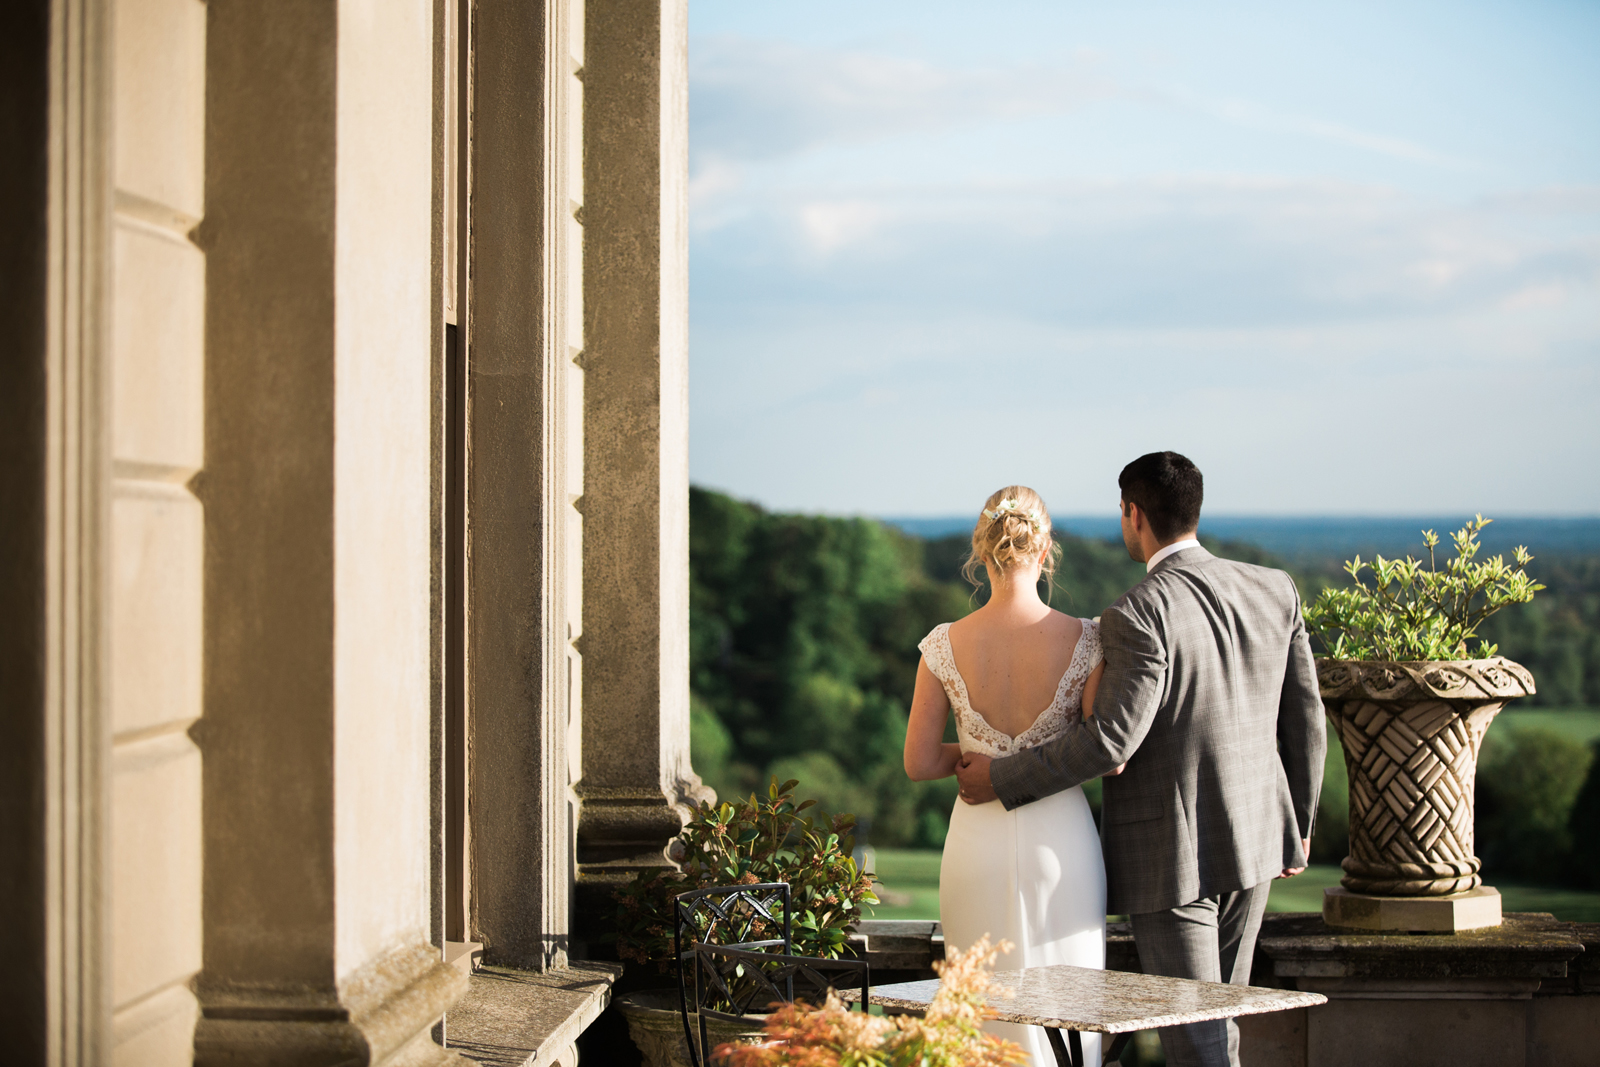 Bride and Groom - Cliveden House Wedding - terrace view